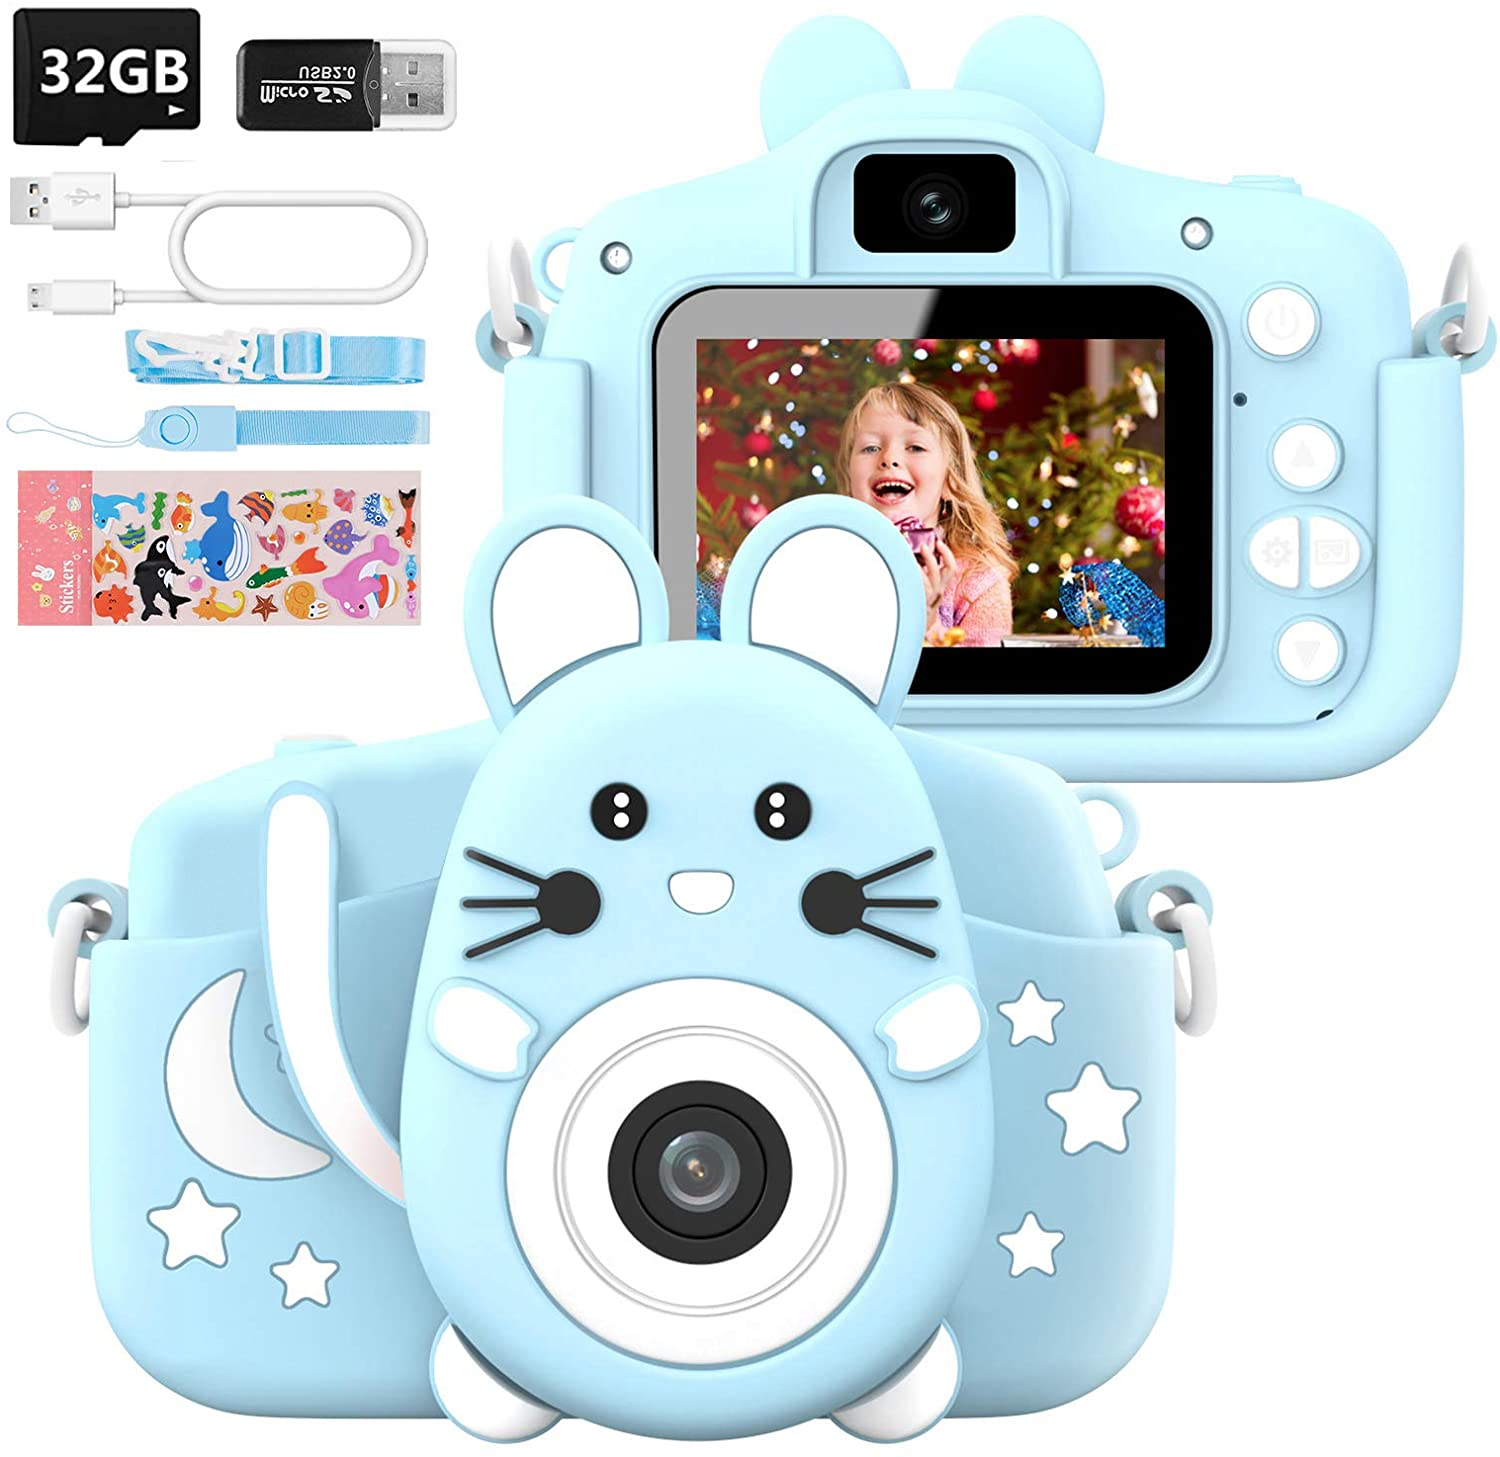 HANGRUI Kids Camera for 3-10 Years Old Boys and Girls, 20.0MP Digital Dual Camera with 2.0 Inch IPS Screen 1080P Video Camcorder Anti-Drop Children Cartoon Selfie Camera Toy for Gift with 32GB SD Card